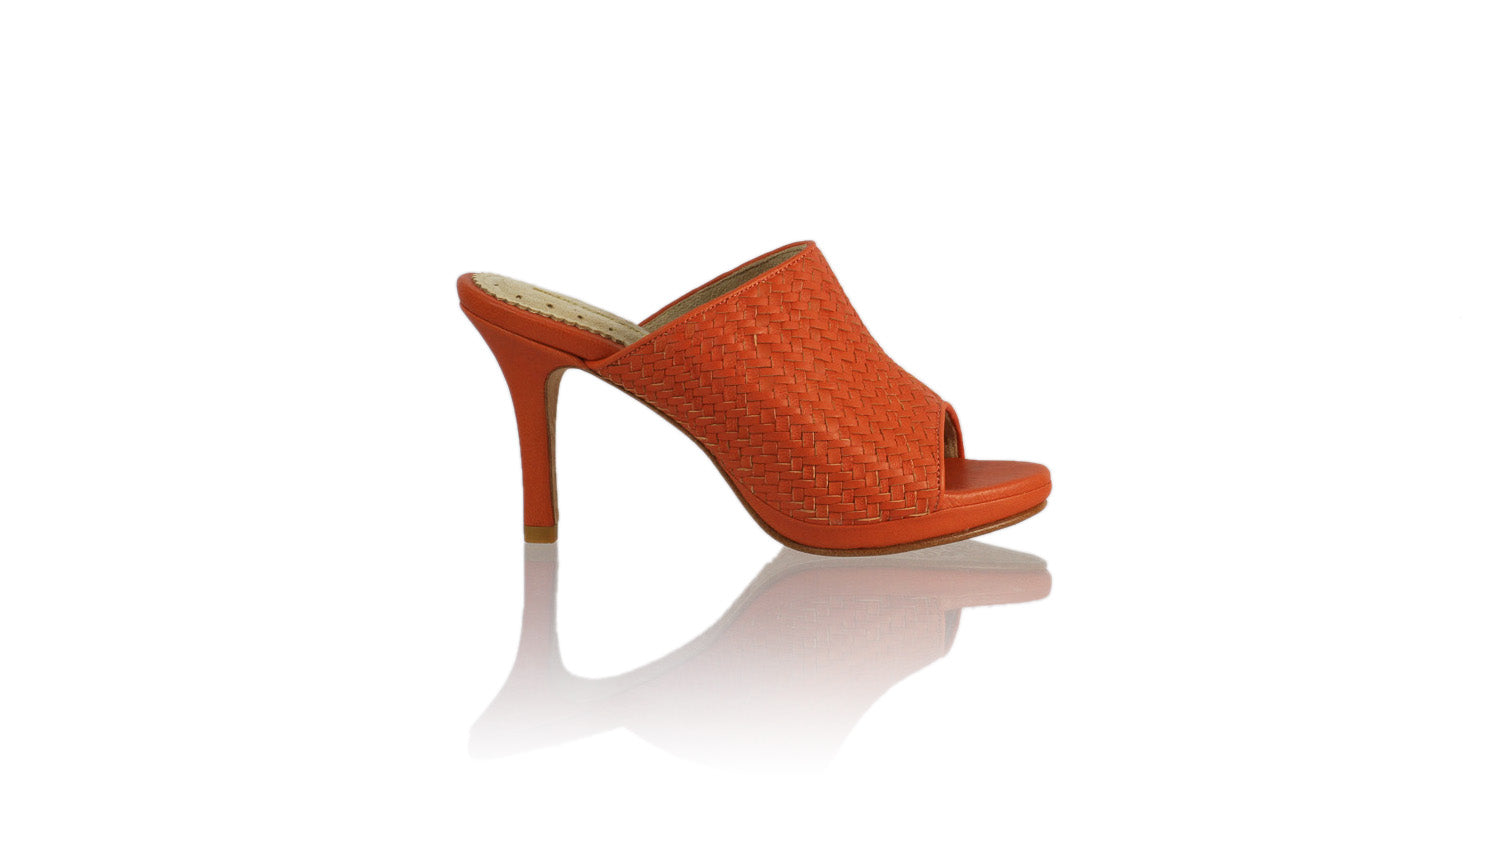 Leather-shoes-Lina Woven without Strap 90mm SH-01 PF - Orange-sandals higheel-NILUH DJELANTIK-NILUH DJELANTIK